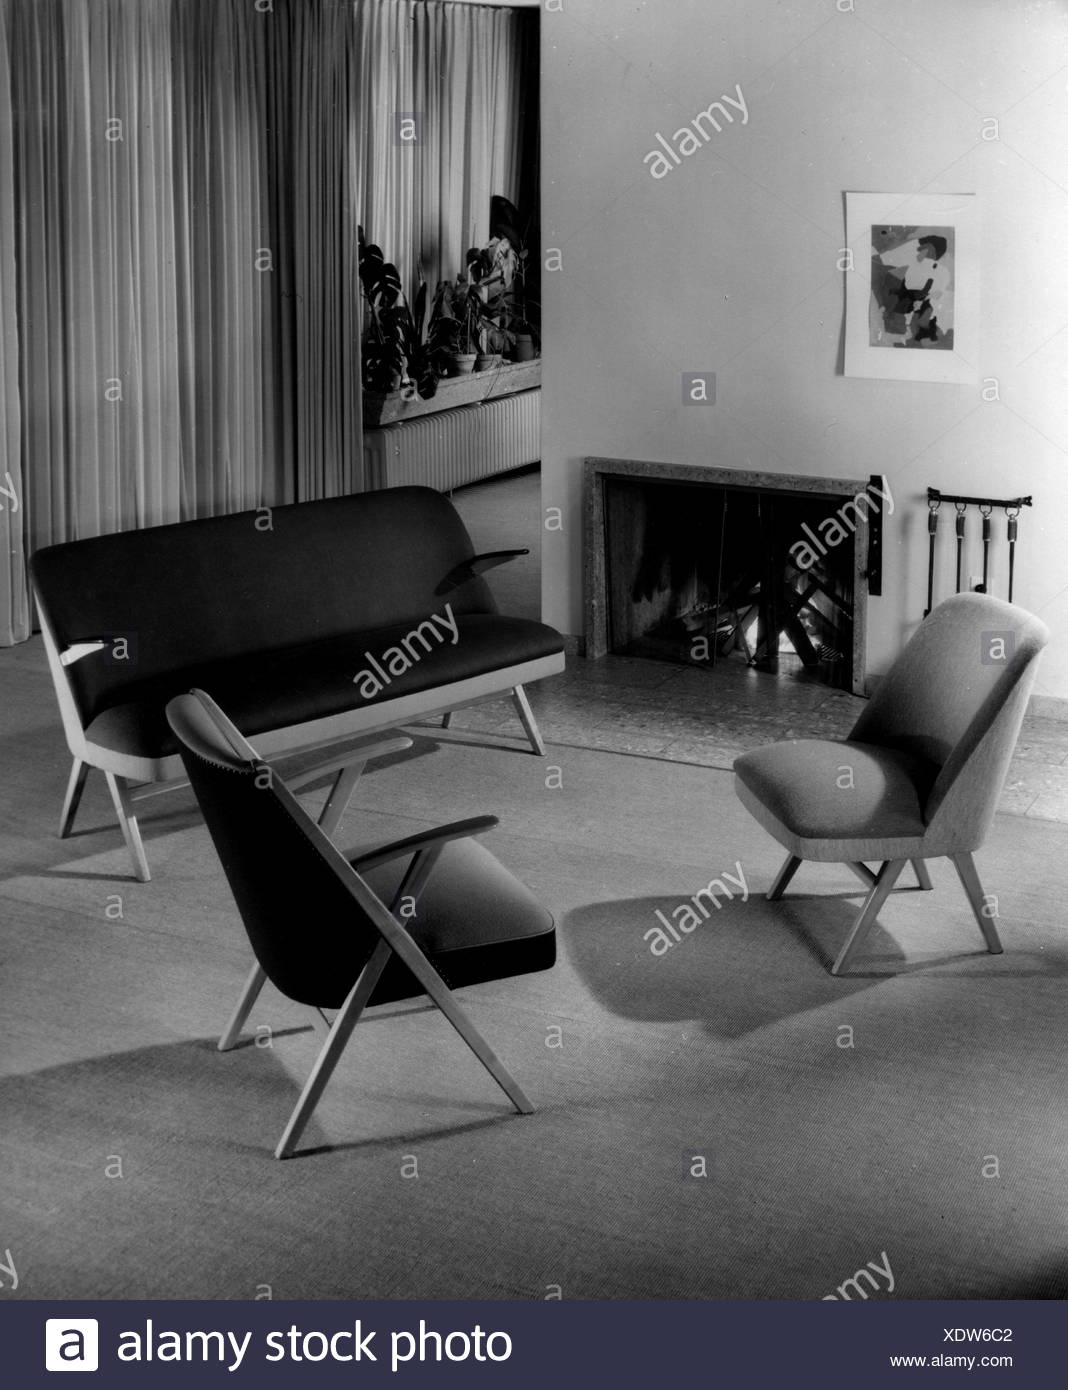 furnishings seats with fireplace 1950s chairs chair sofa settee sofas settees couch chaise chaise longue couches chaises chaise longues bench benches cool coolness chill functional open fireplace with fire living room sitting room livingroom living rooms sitting rooms livingrooms lifestyle living live dwelling flat seat seats seating furniture furniture furnishing interior furnishings salon parlor parlour parlors parlours sitting room sitting rooms room rooms 1950s 20th century historic historical additional rights clearences na XDW6C2